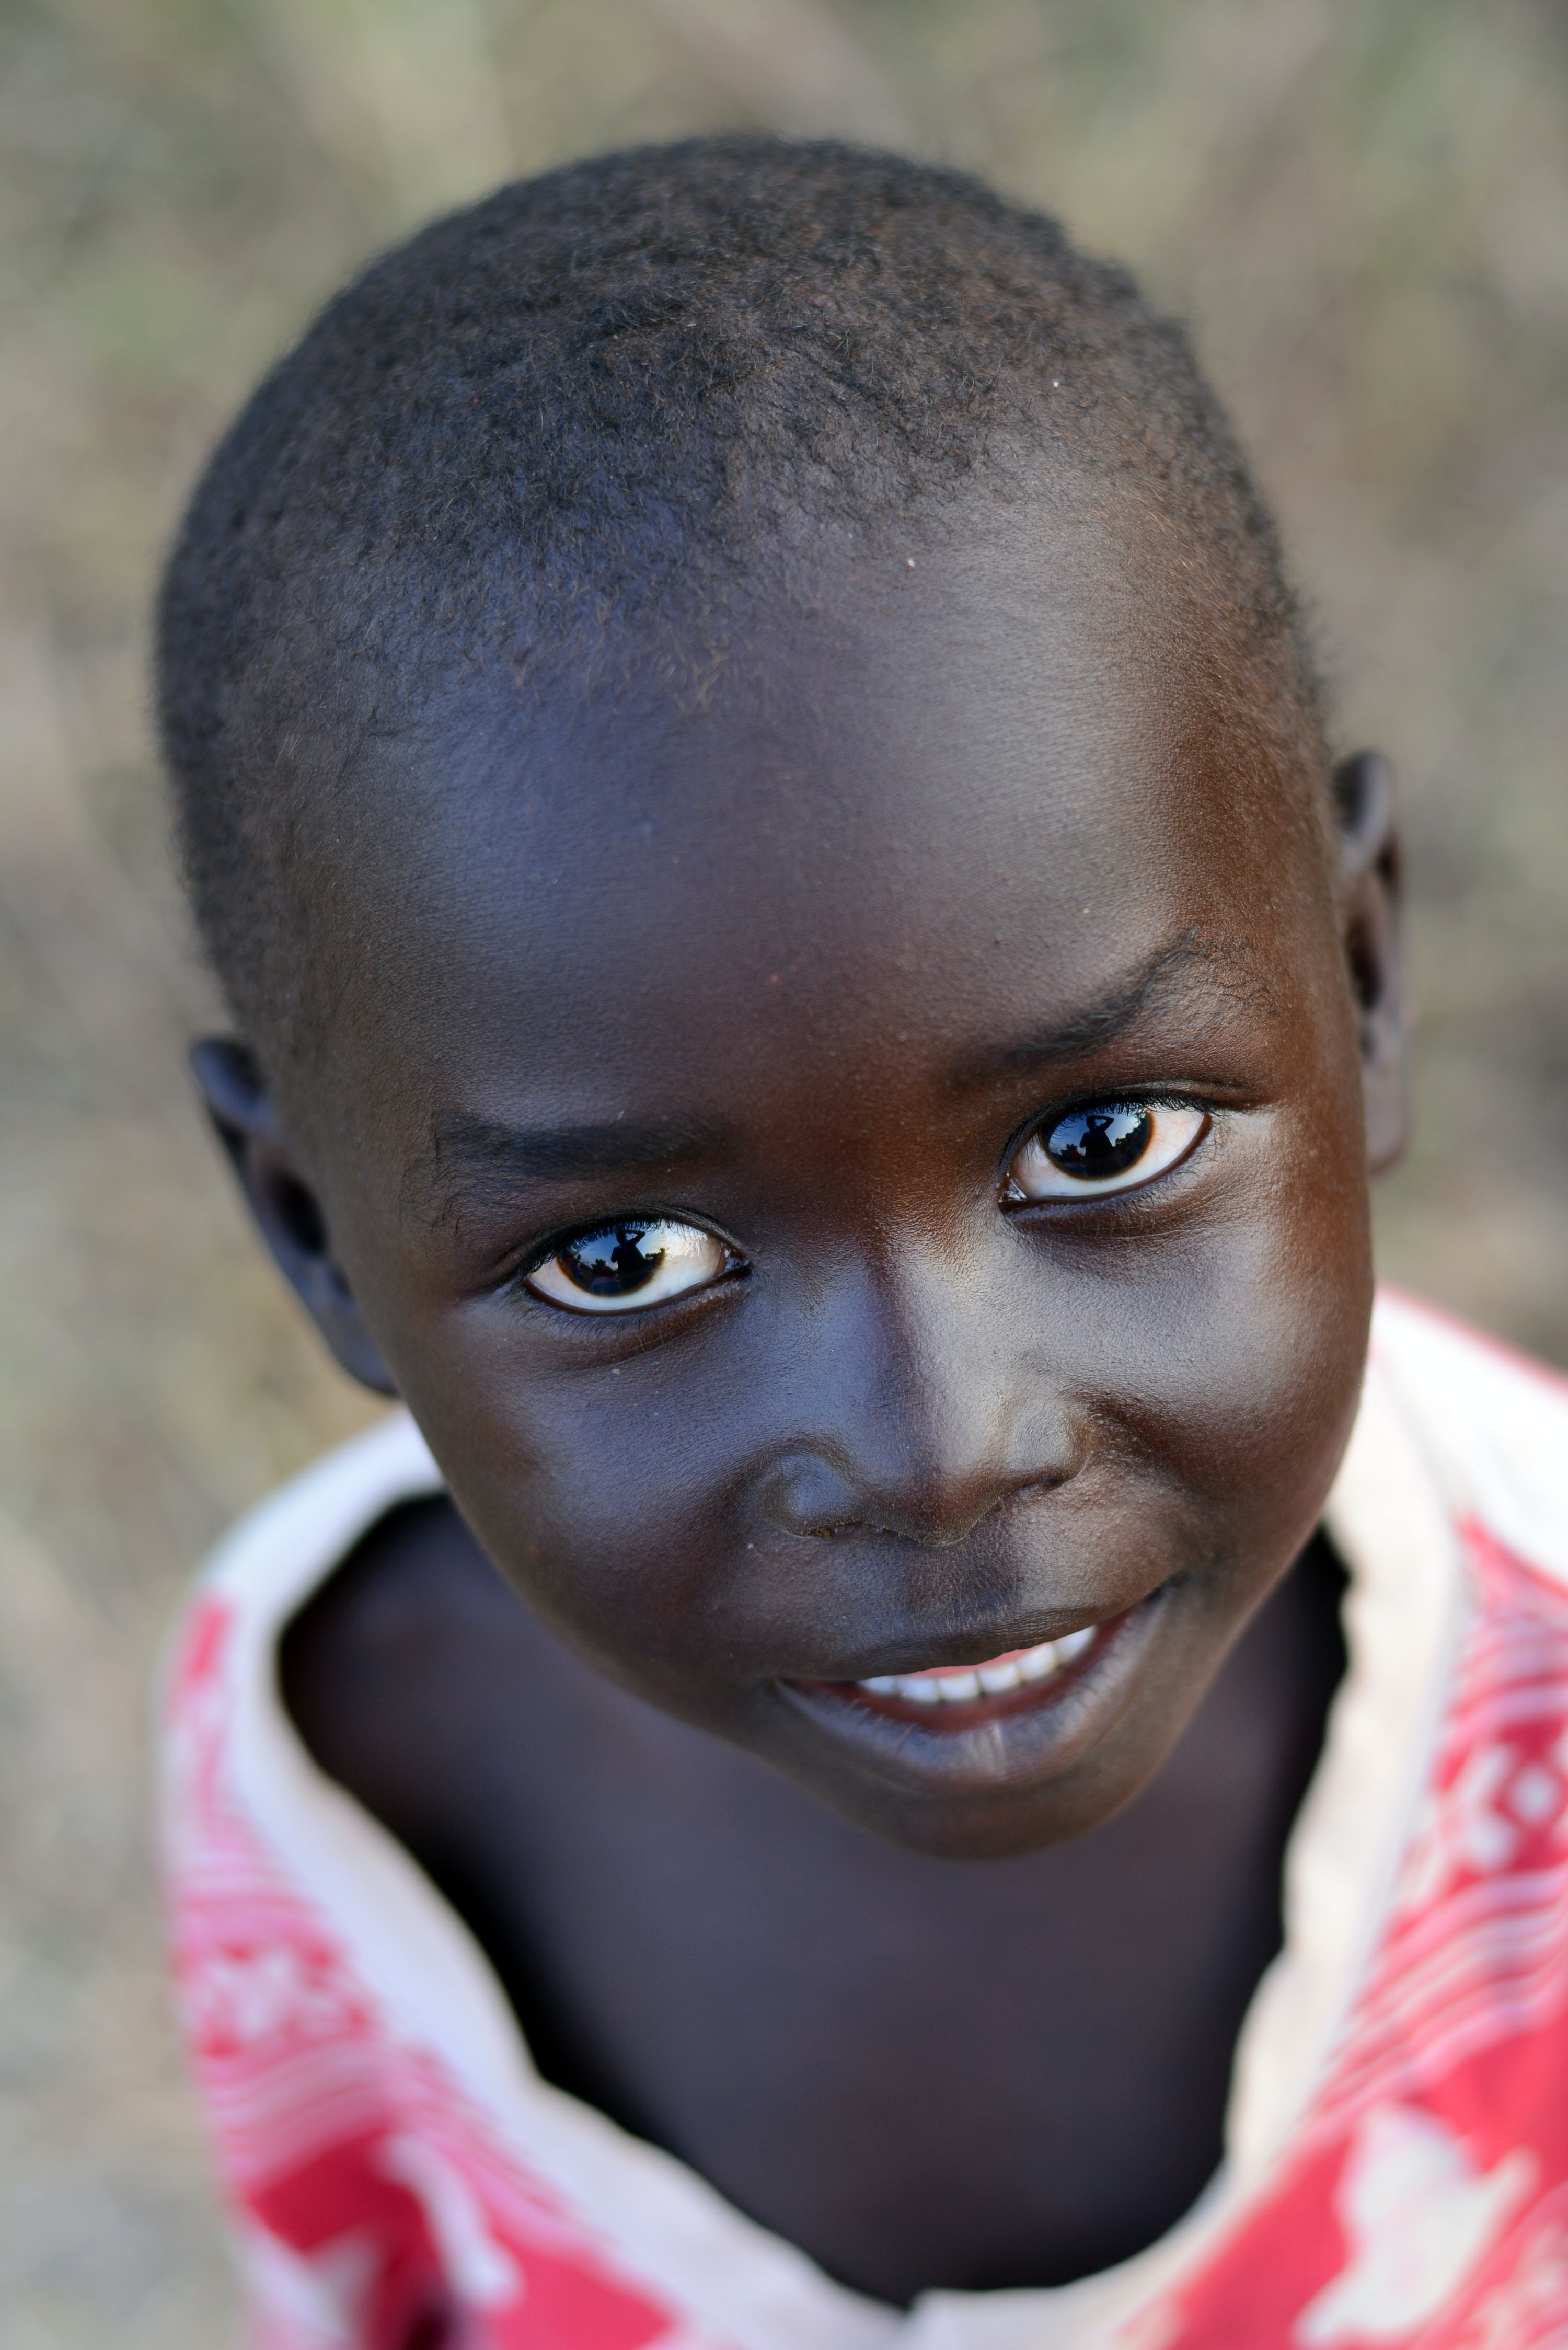 Free stock photo of african child